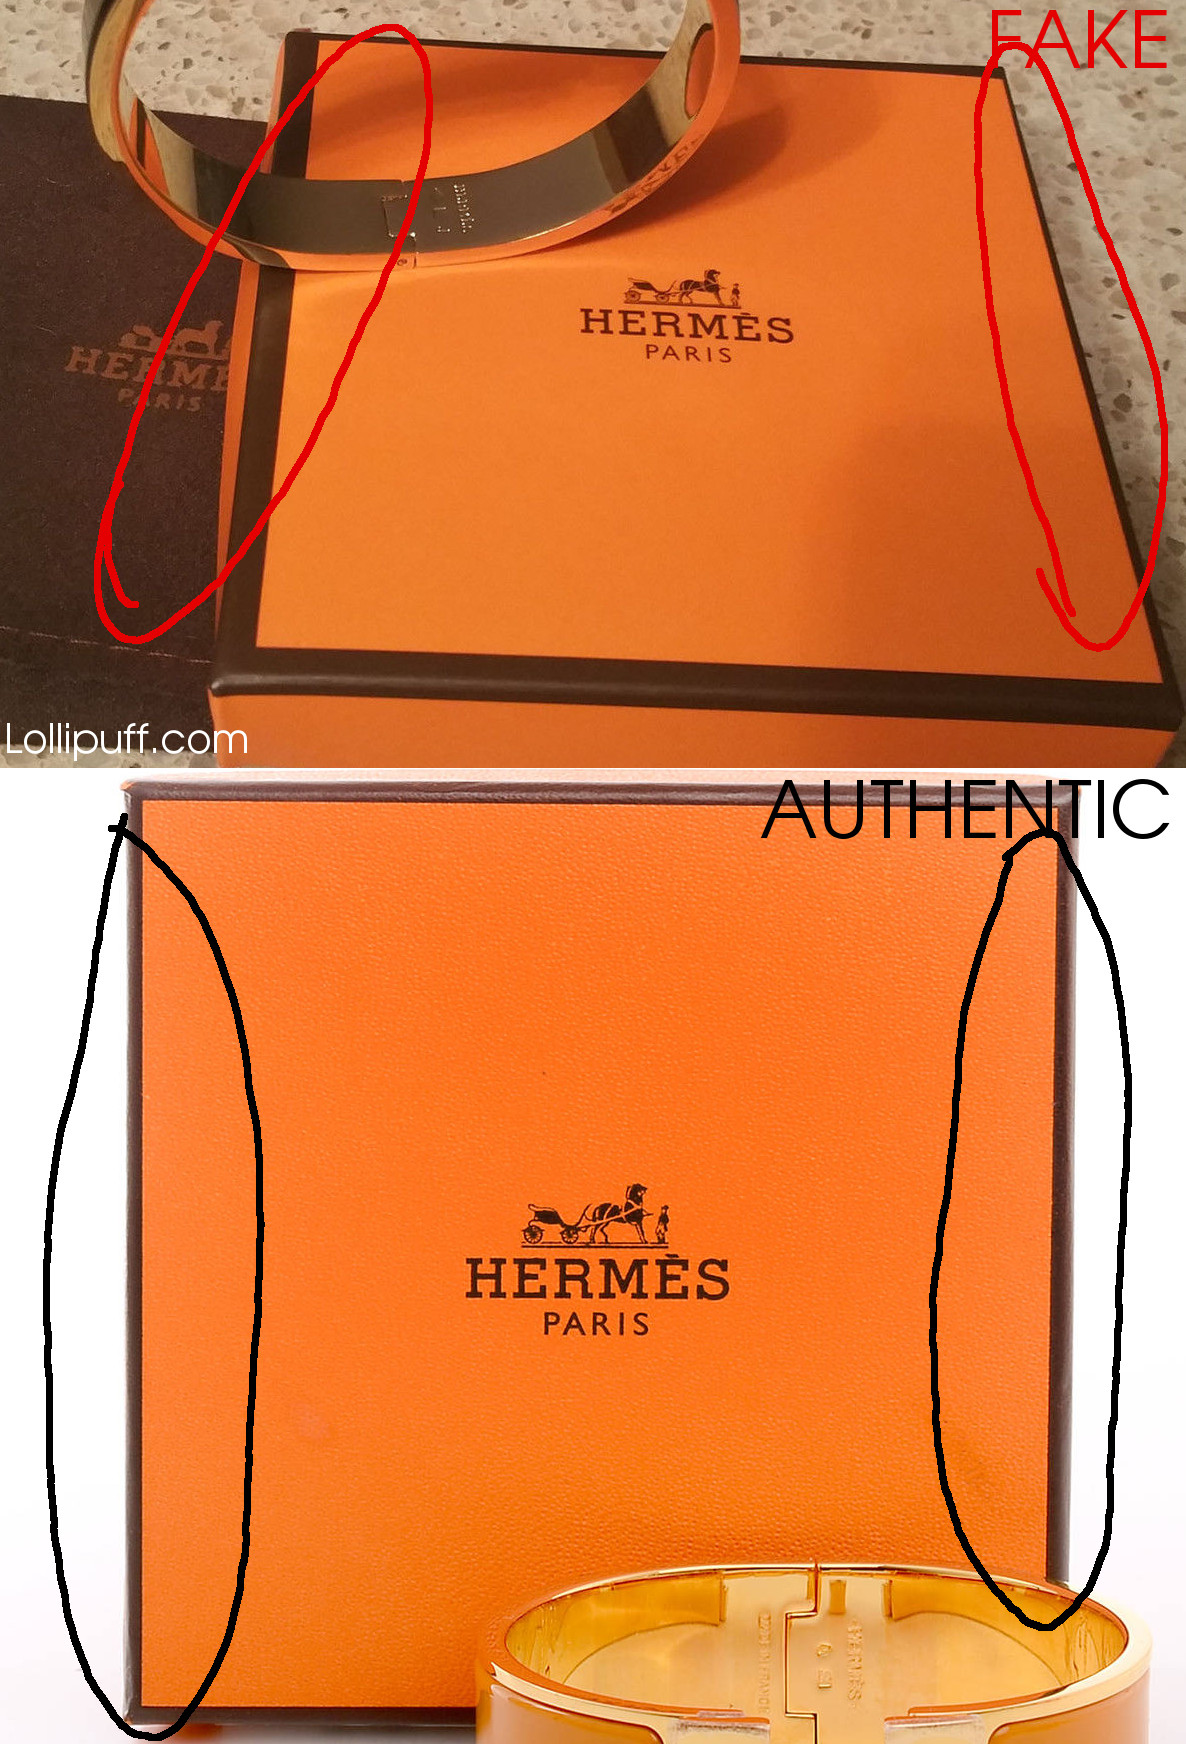 hermes box packaging accessory authenticate authentication